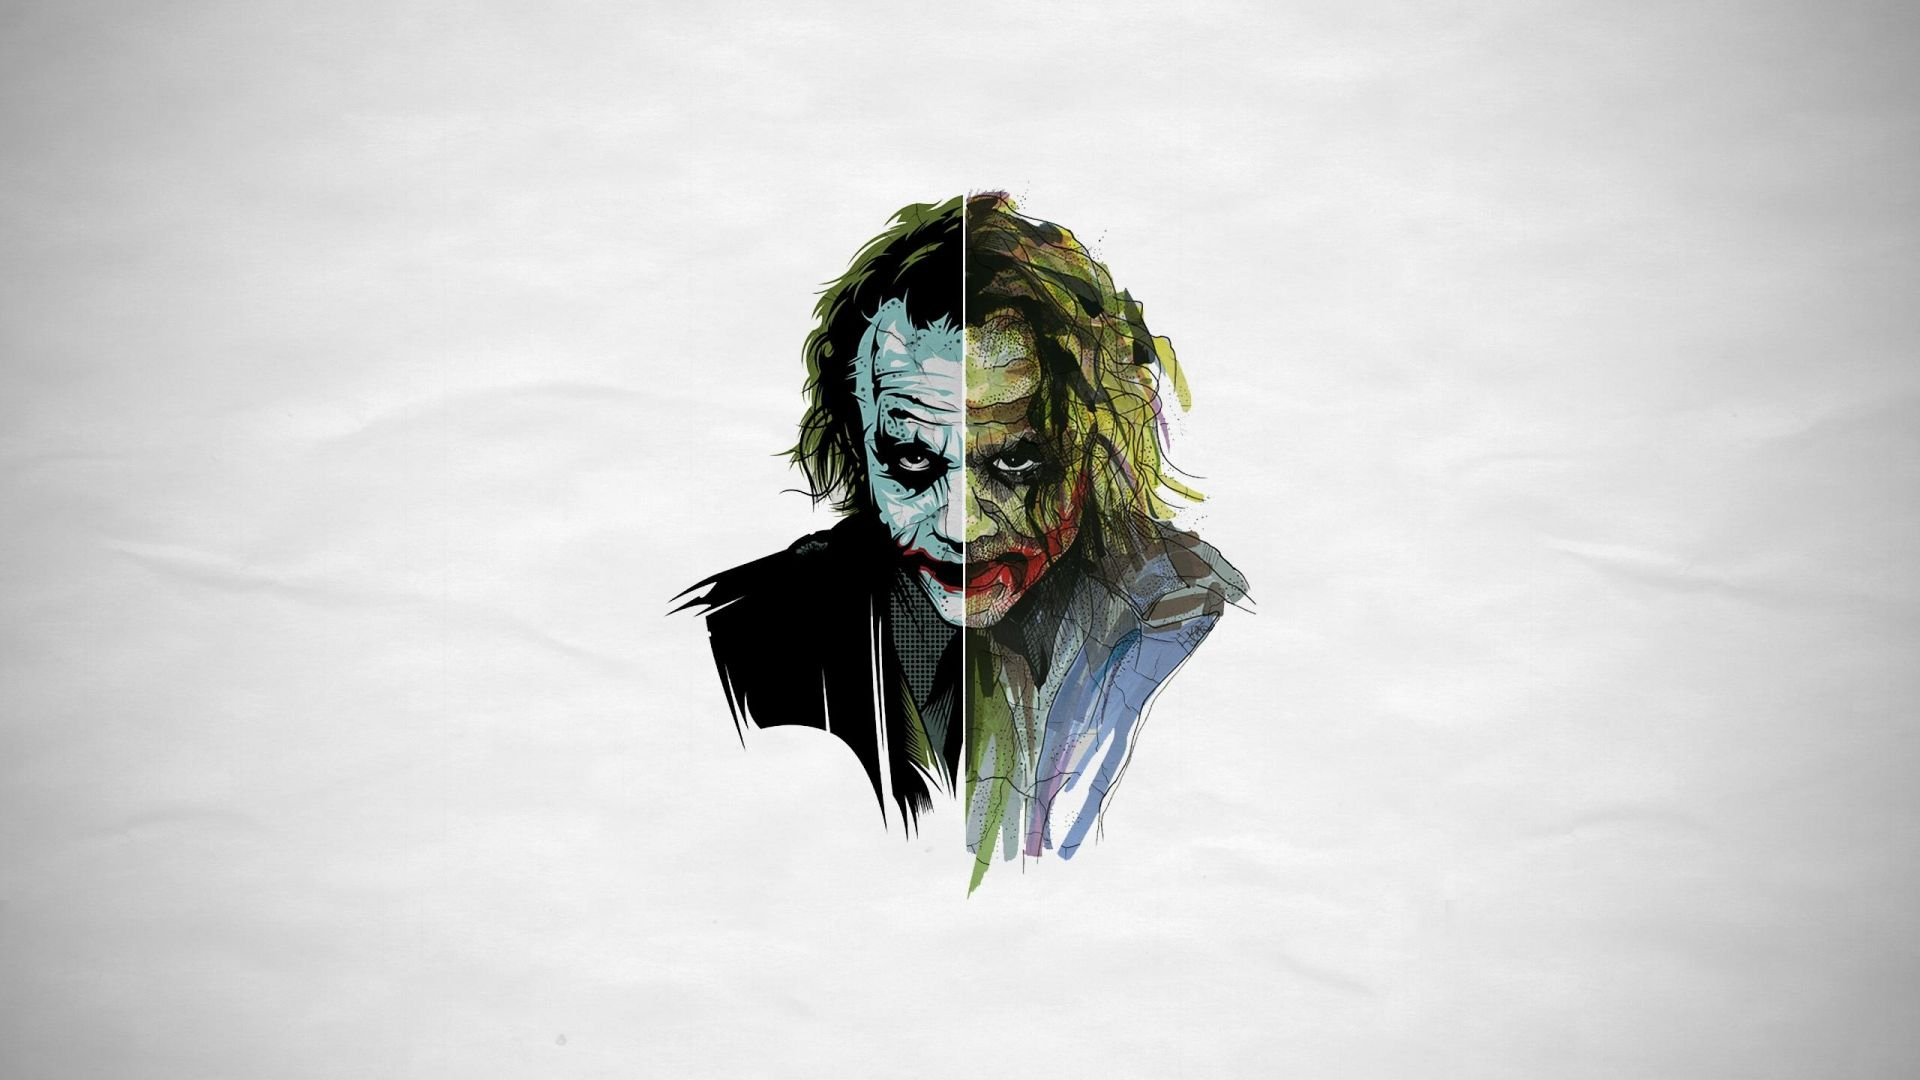 amazing joker hd wallpapers 1080p with hd wallpaper windows 8 with